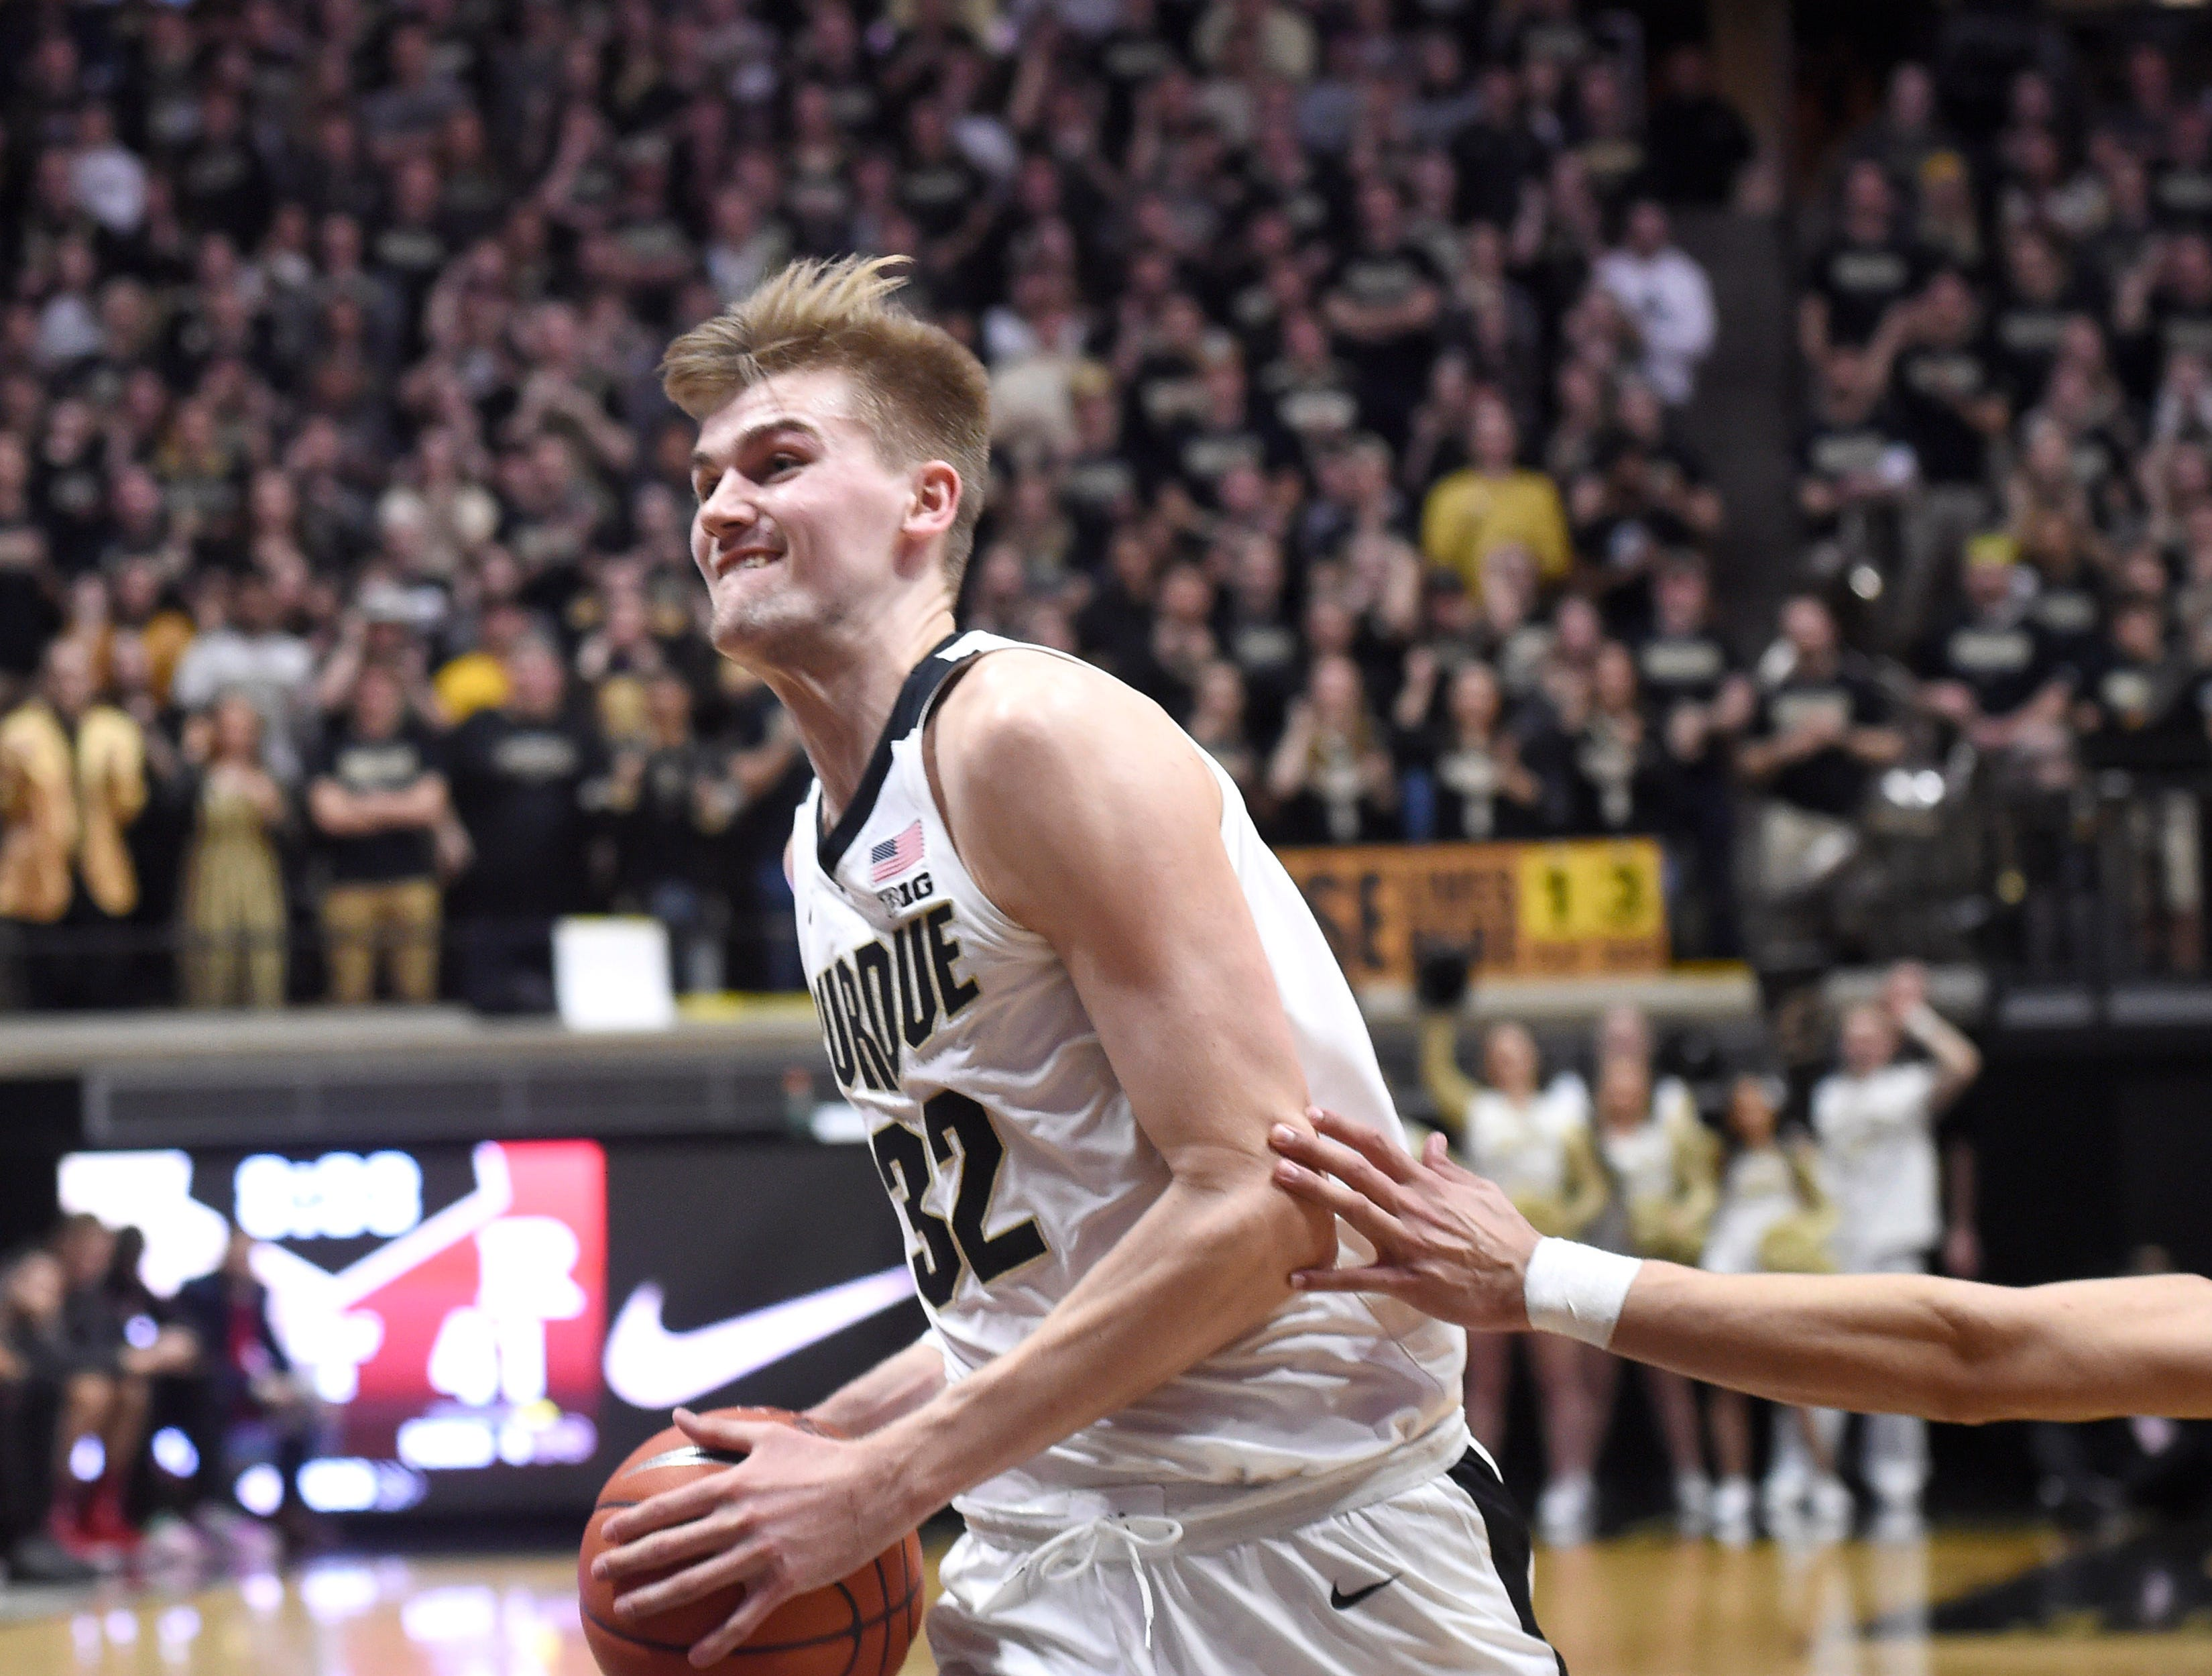 Jan 15, 2019; West Lafayette, IN, USA; Purdue Boilermakers center Matt Haarms (32) drives to the basket past the defense of the Rutgers Scarlet Knights in the 2nd half at Mackey Arena. Mandatory Credit: Sandra Dukes-USA TODAY Sports